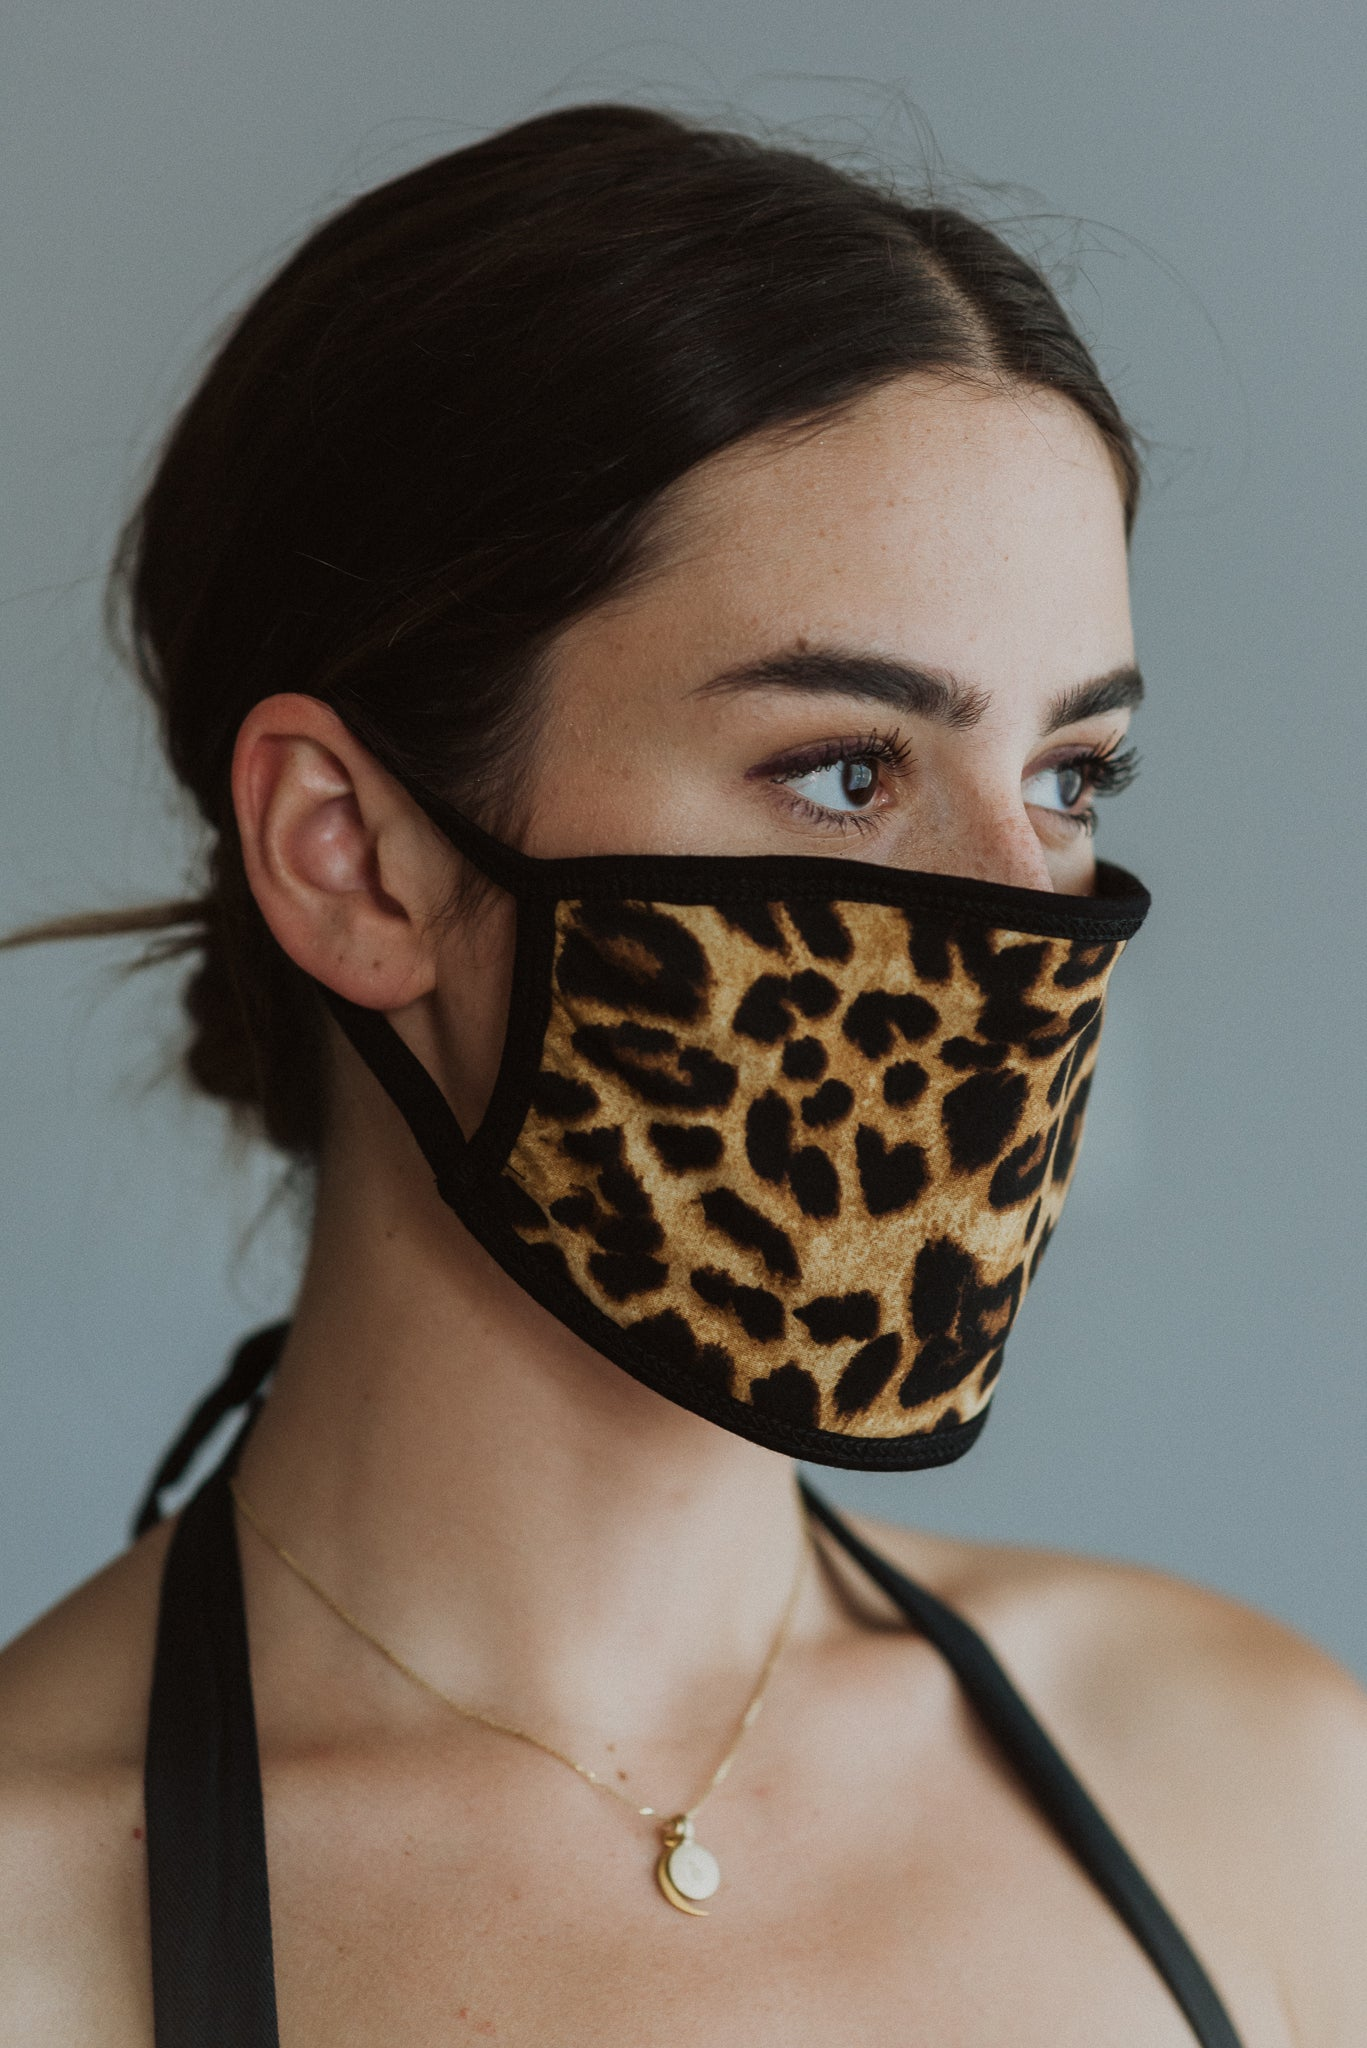 xSOLD OUTx Keeping It Safe Face Mask in Leopard